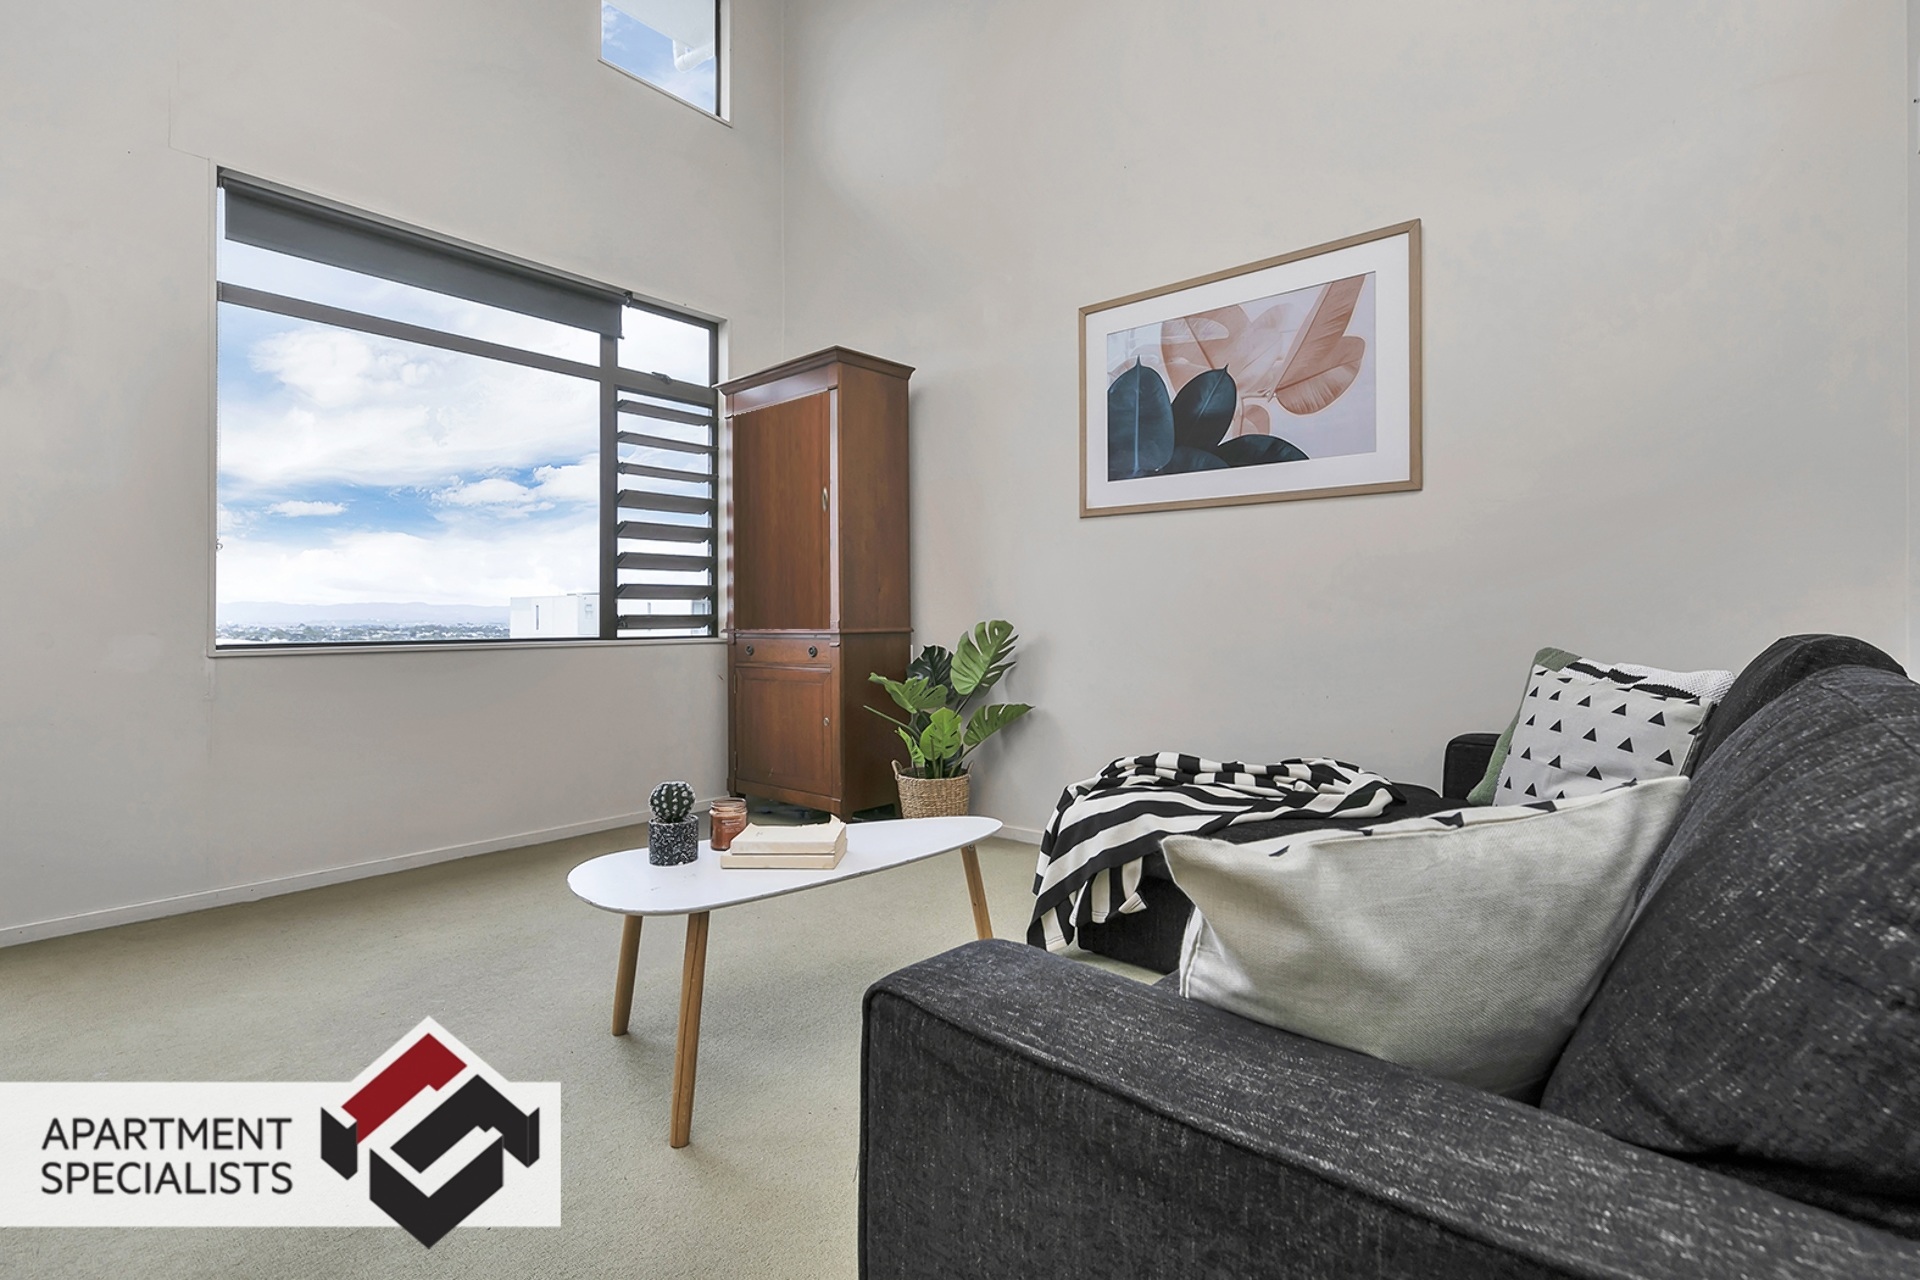 8 | 5 Charlotte Street, Eden Terrace | Apartment Specialists